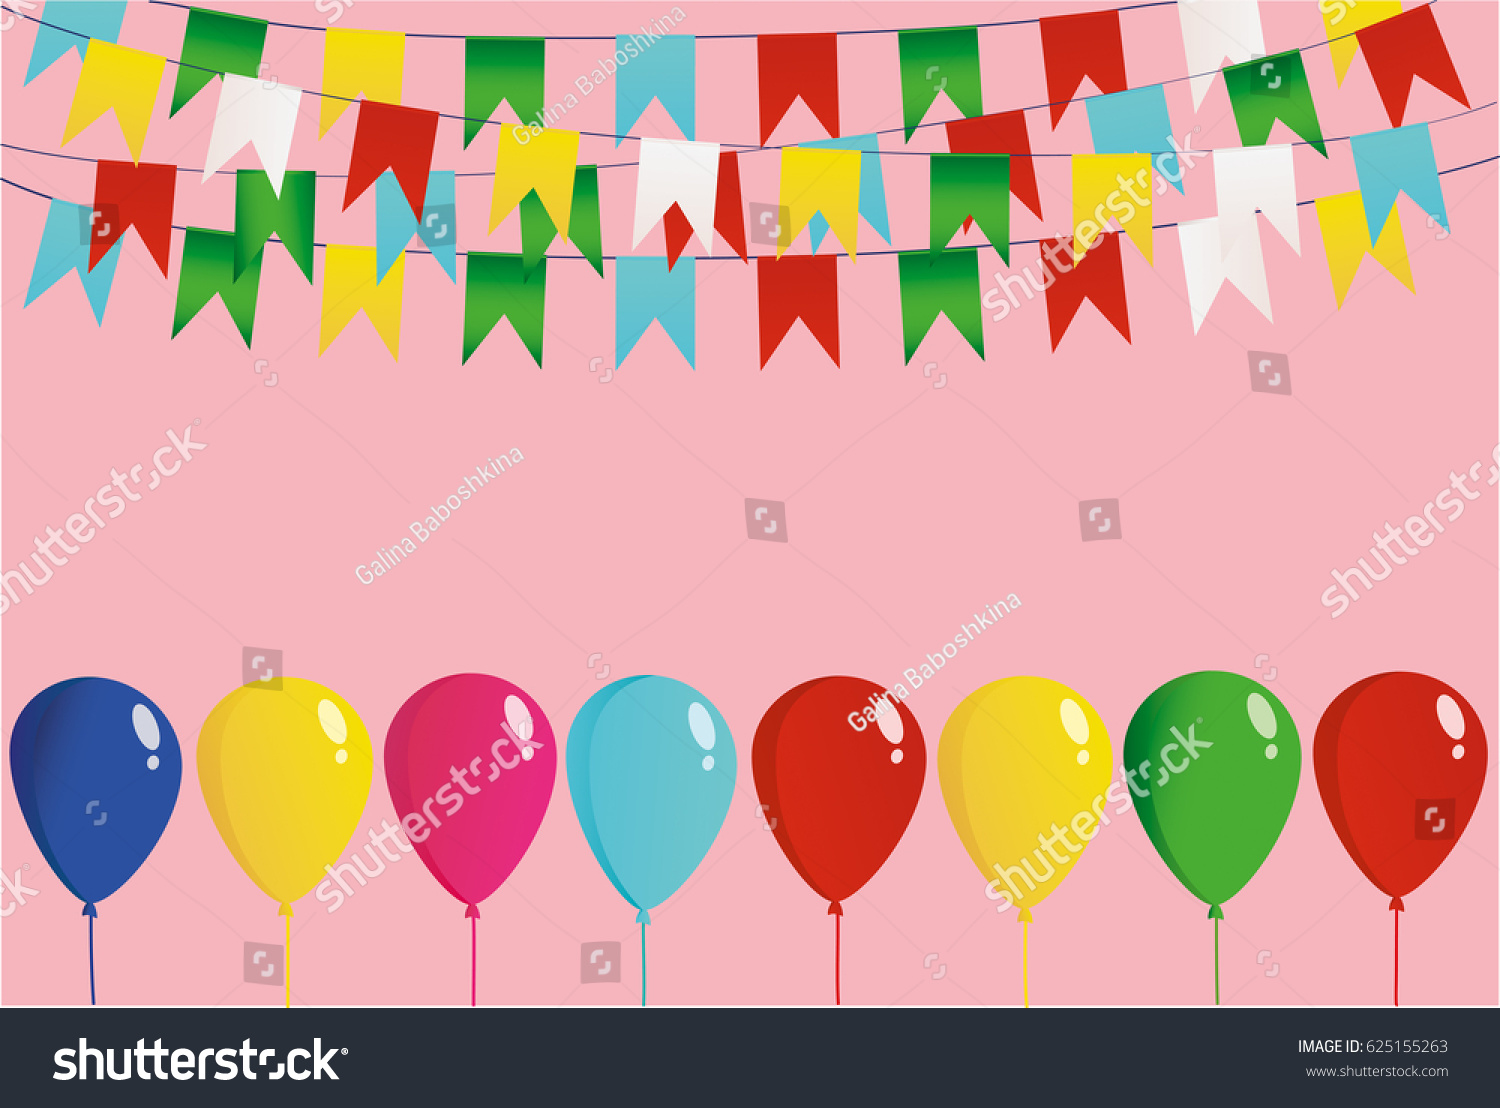 Colorful Oatmeal On Rope Balloons Garland Stock Vector 625155263 ...